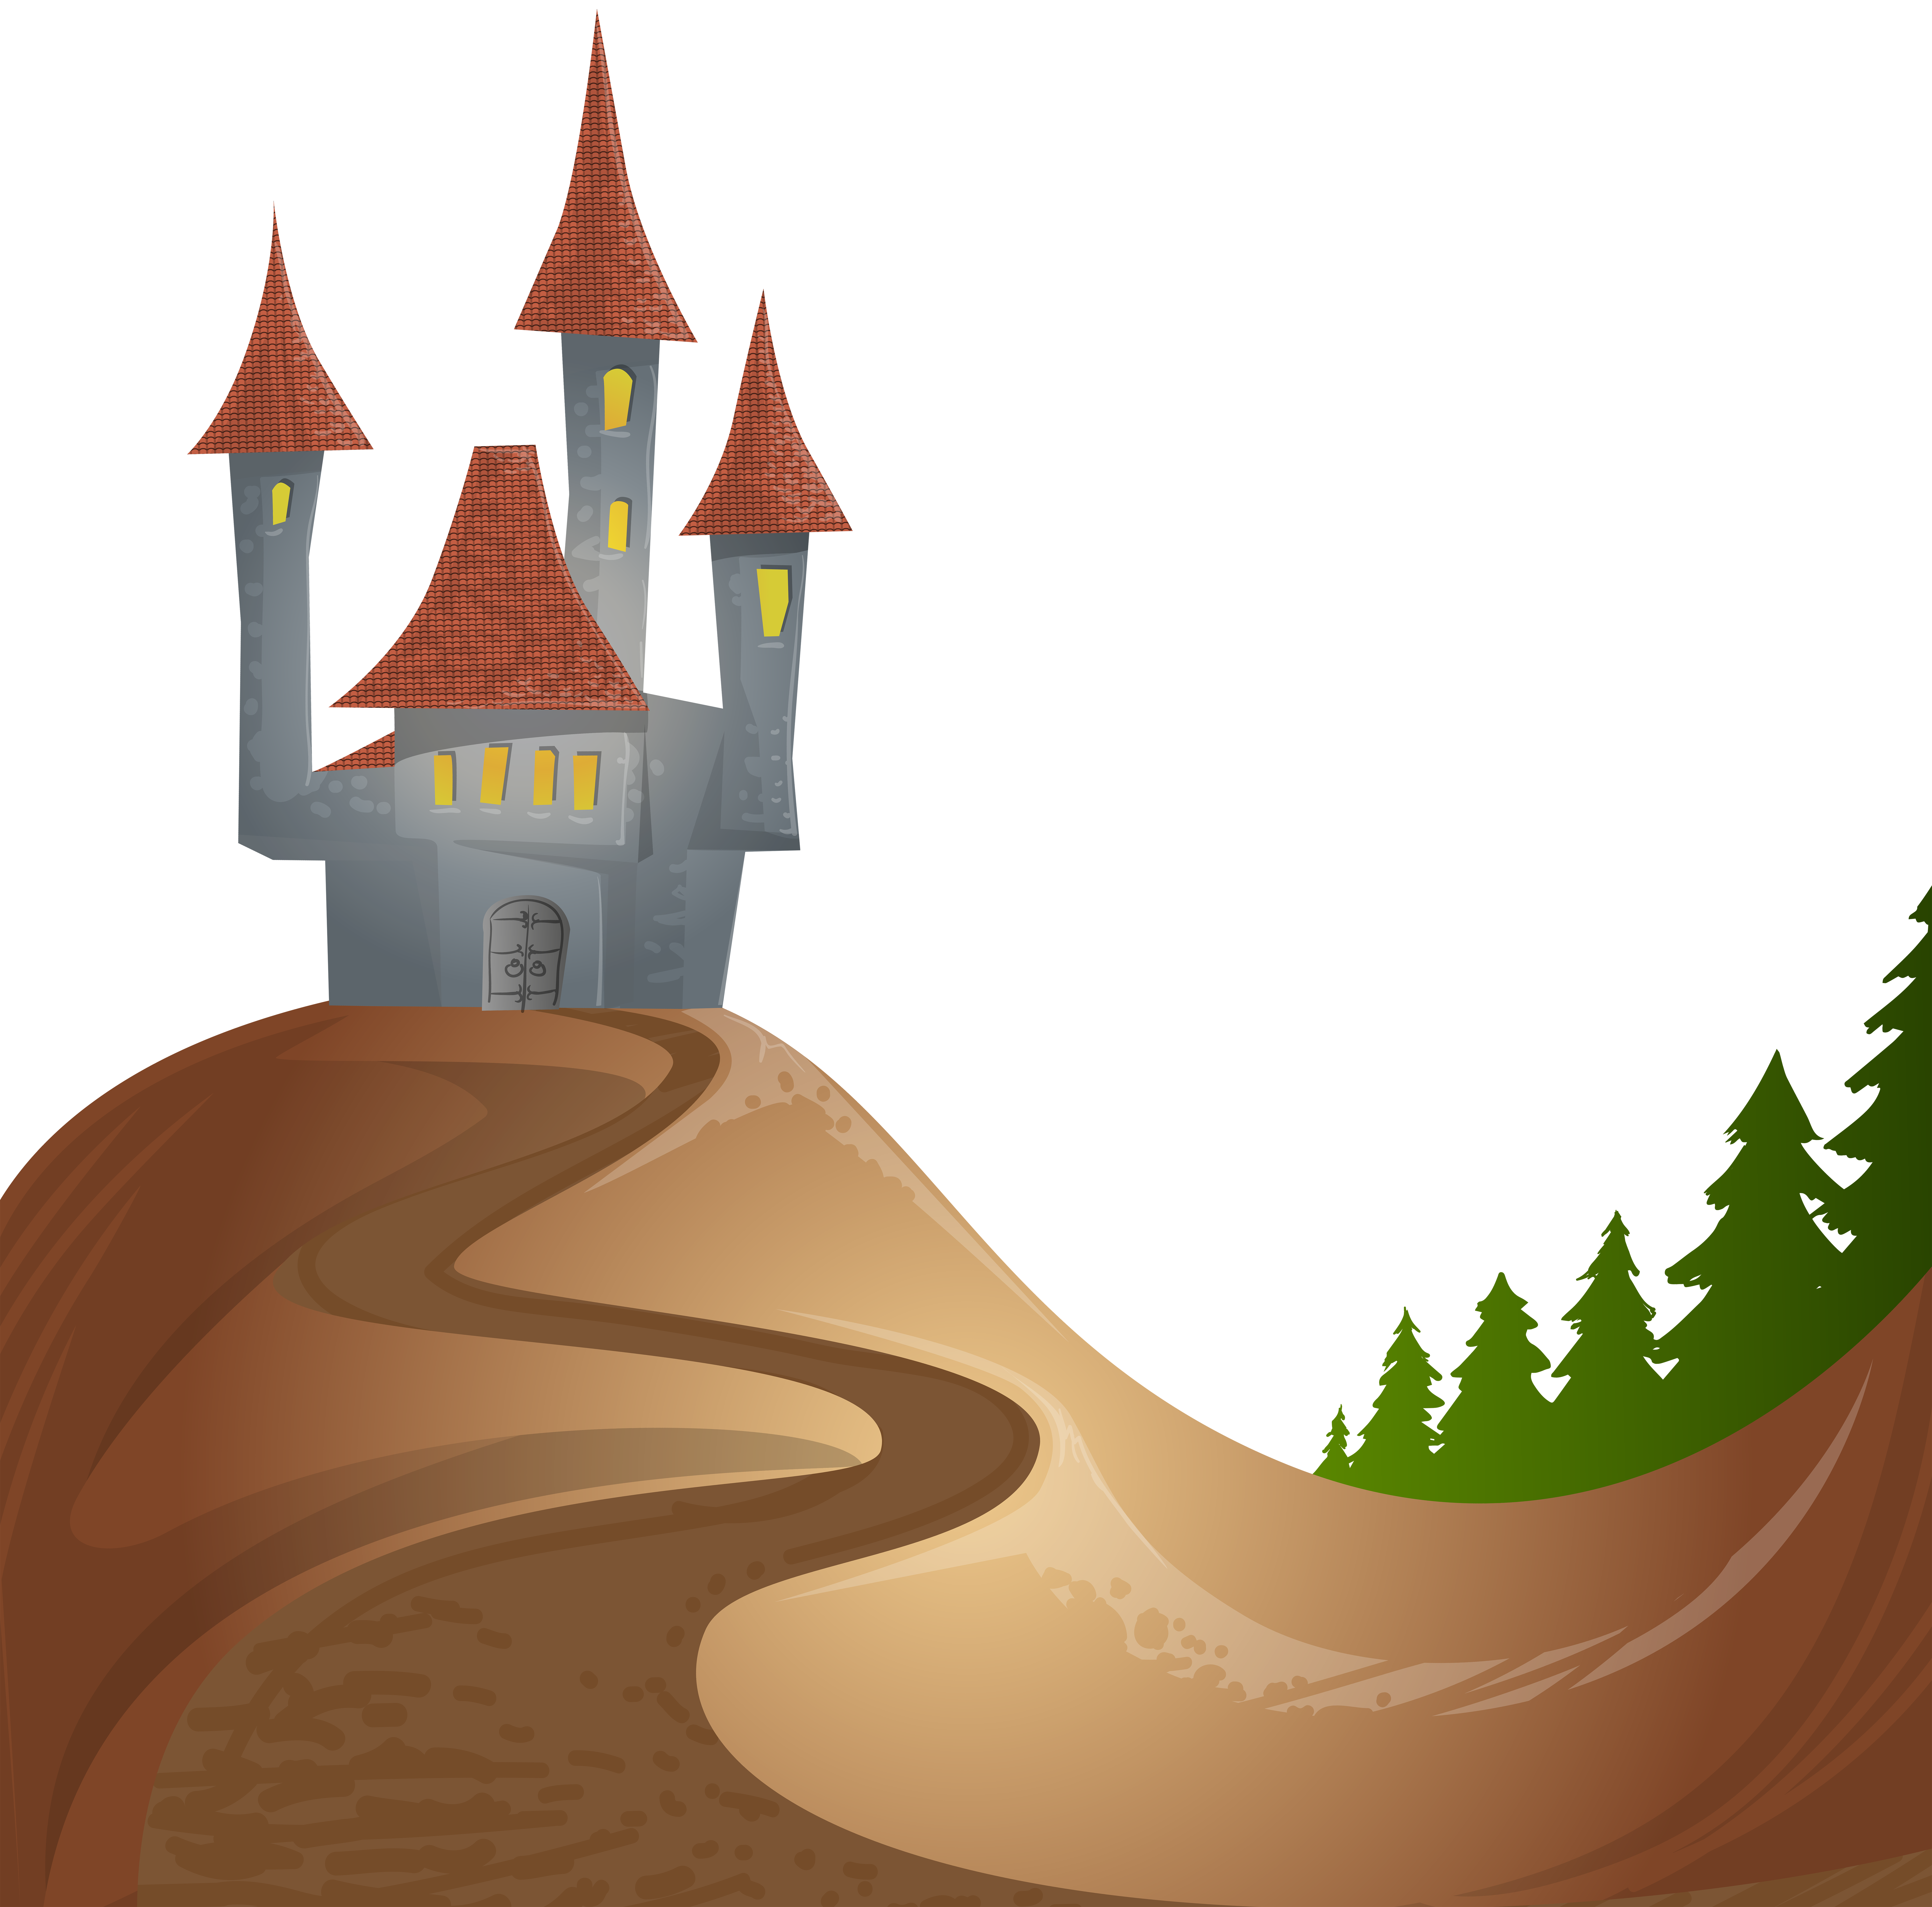 House on a hill clipart jpg transparent stock Hill Clipart Free   Free download best Hill Clipart Free on ... jpg transparent stock